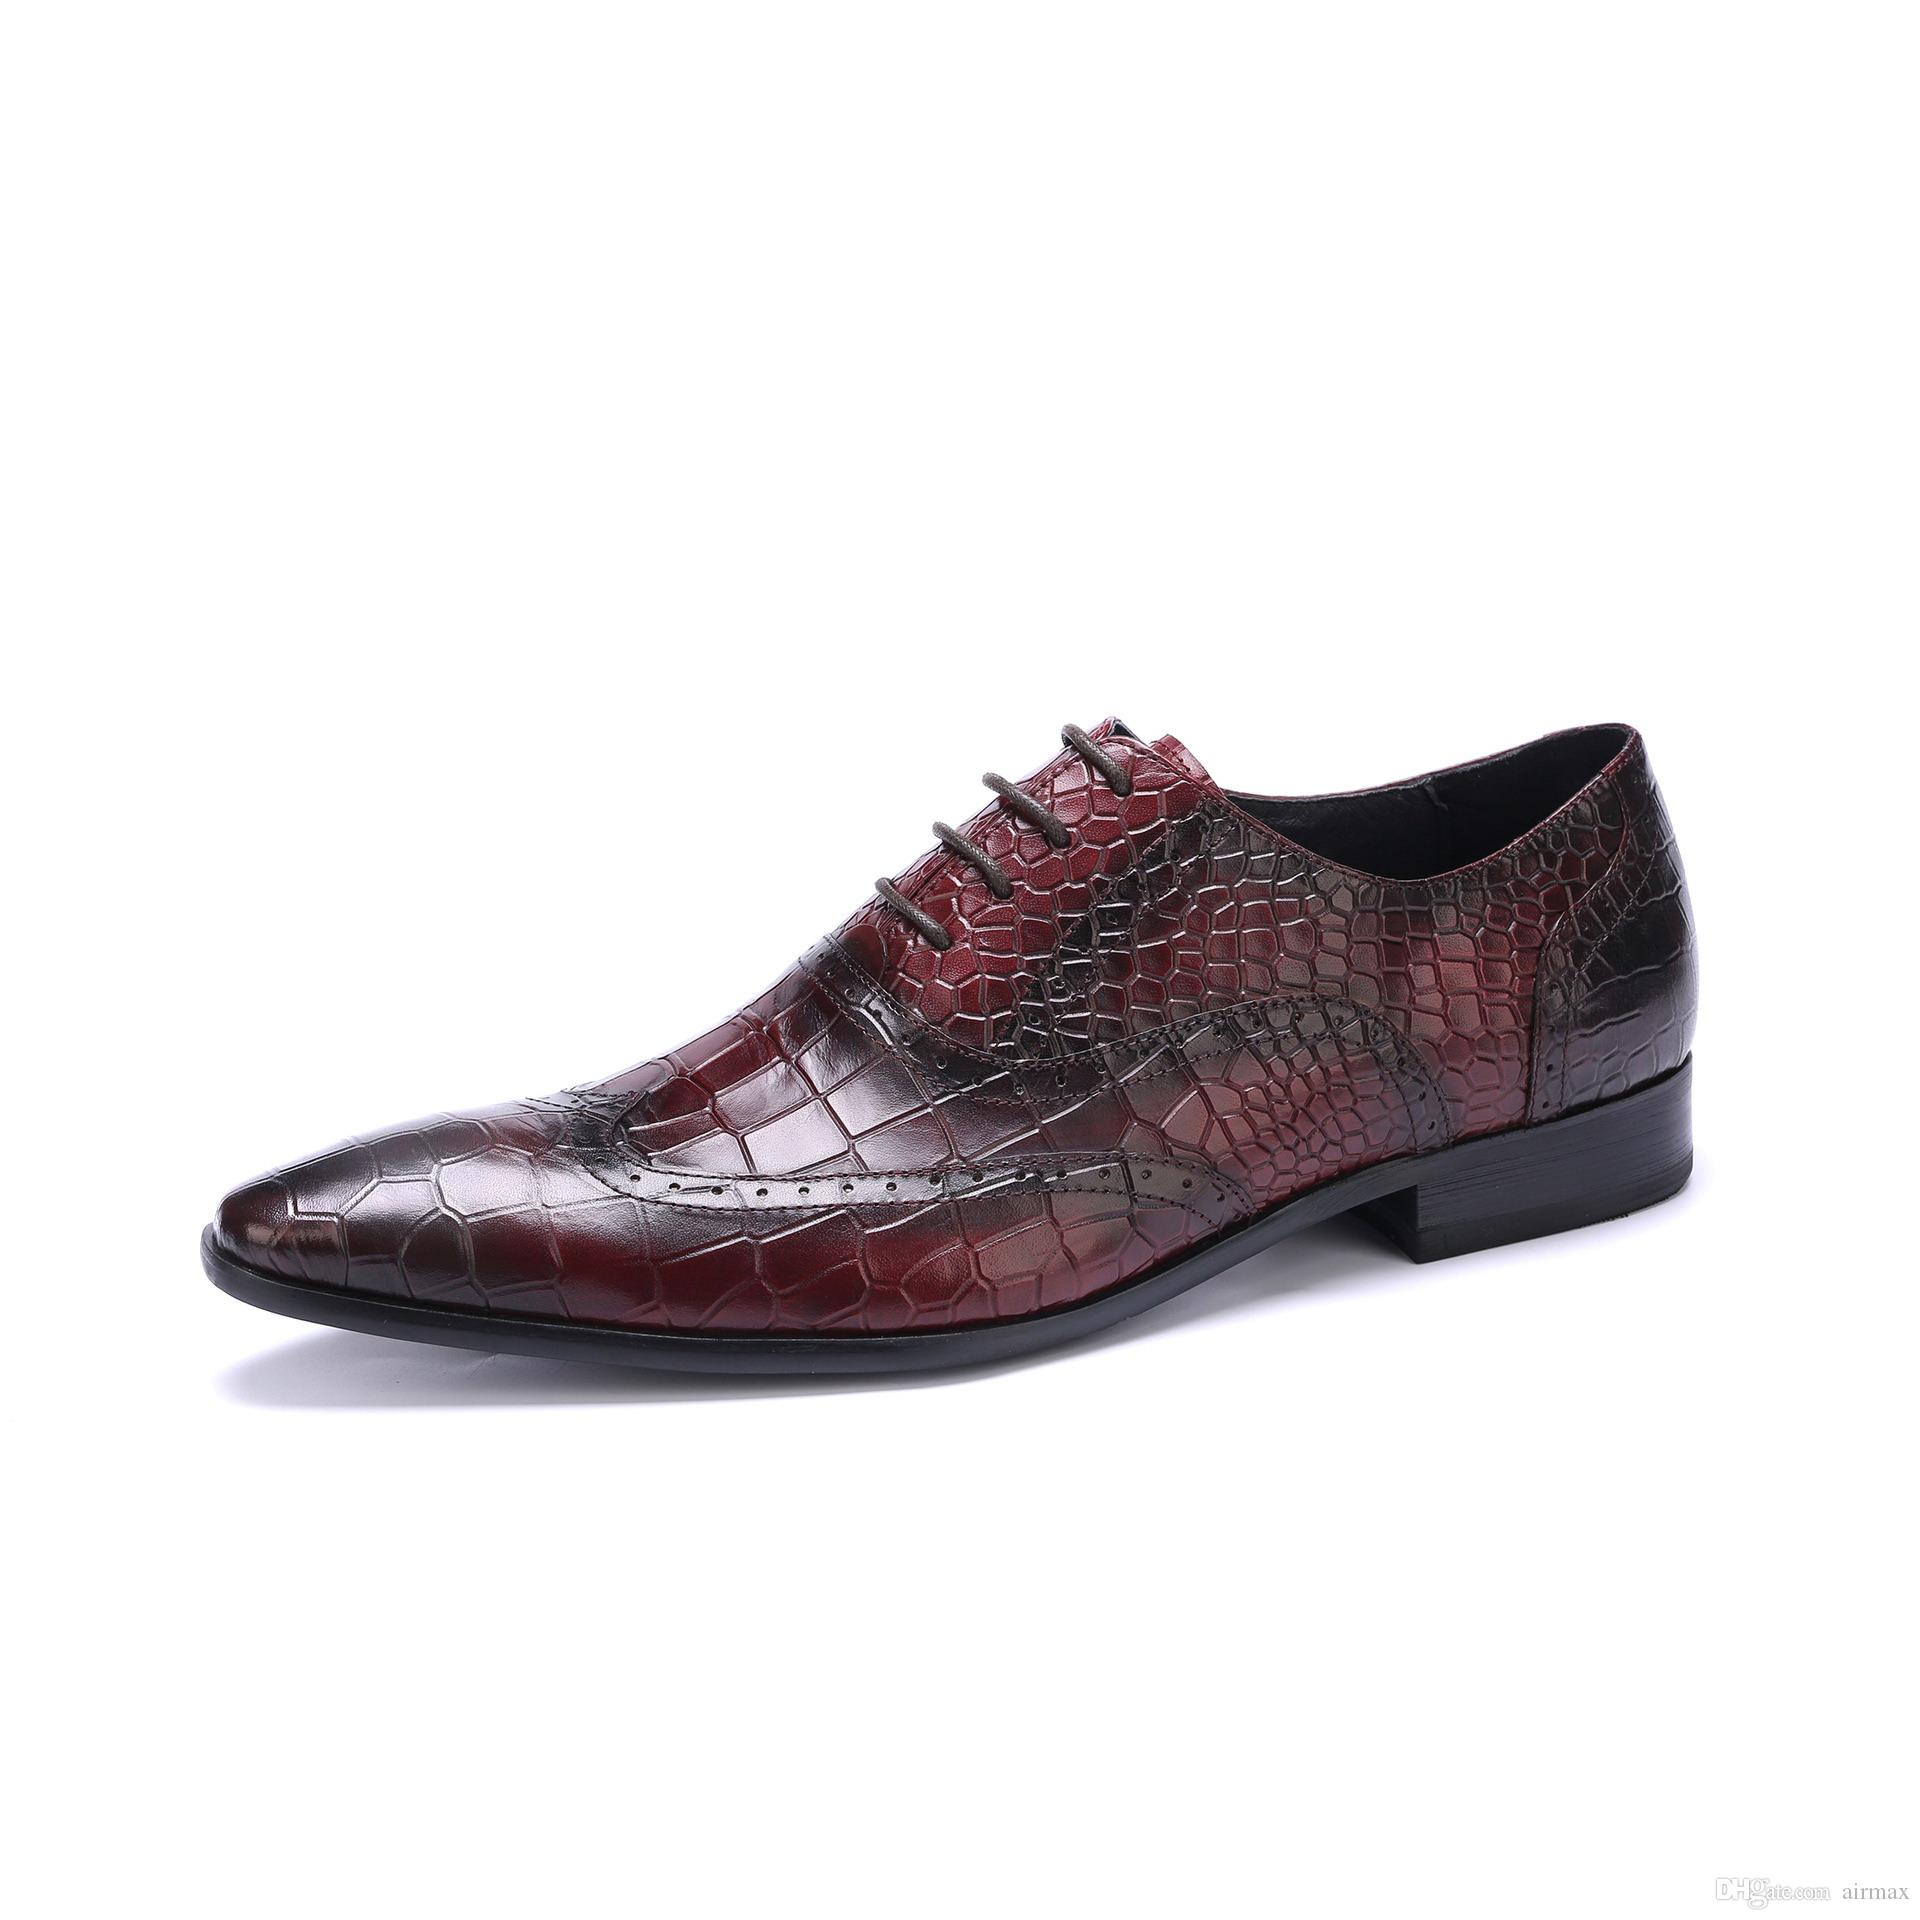 980657e3b5391b Men Formal Shoes England Fashion Python Snake Pattern Genuine Leather Dress  Shoes For Wedding Groom Red Pointed Toe Shoes Mens Shoes Online Mens Dress  Boots ...